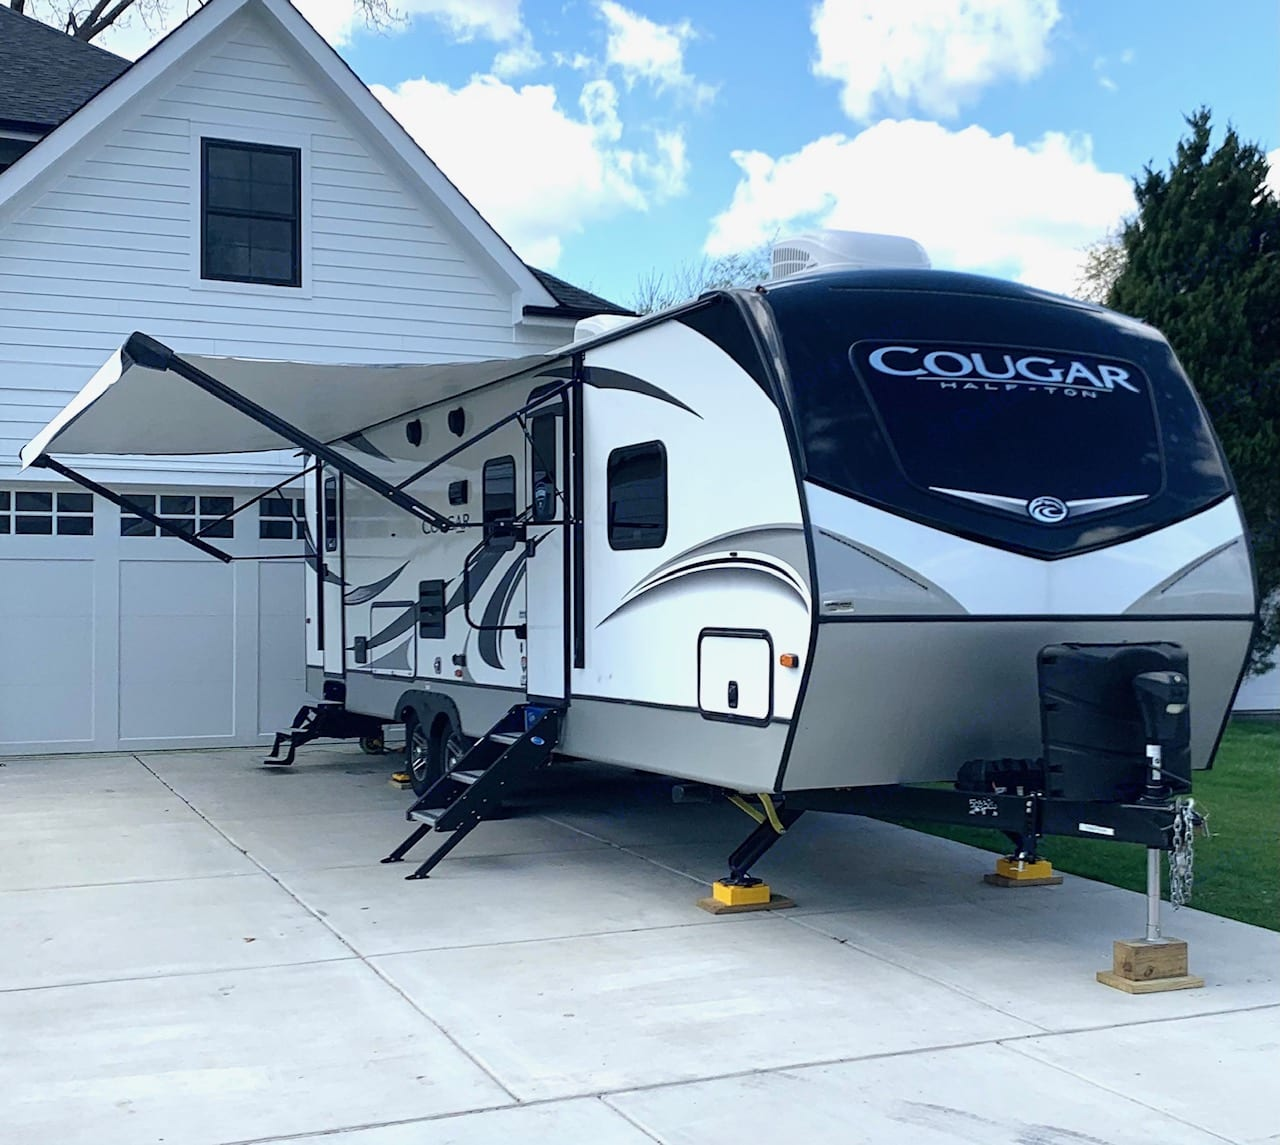 Electronic hitch jack and four point auto leveling stabilizer jacks.  RV comes has two batteries and two propane tanks.. Keystone Cougar 2020